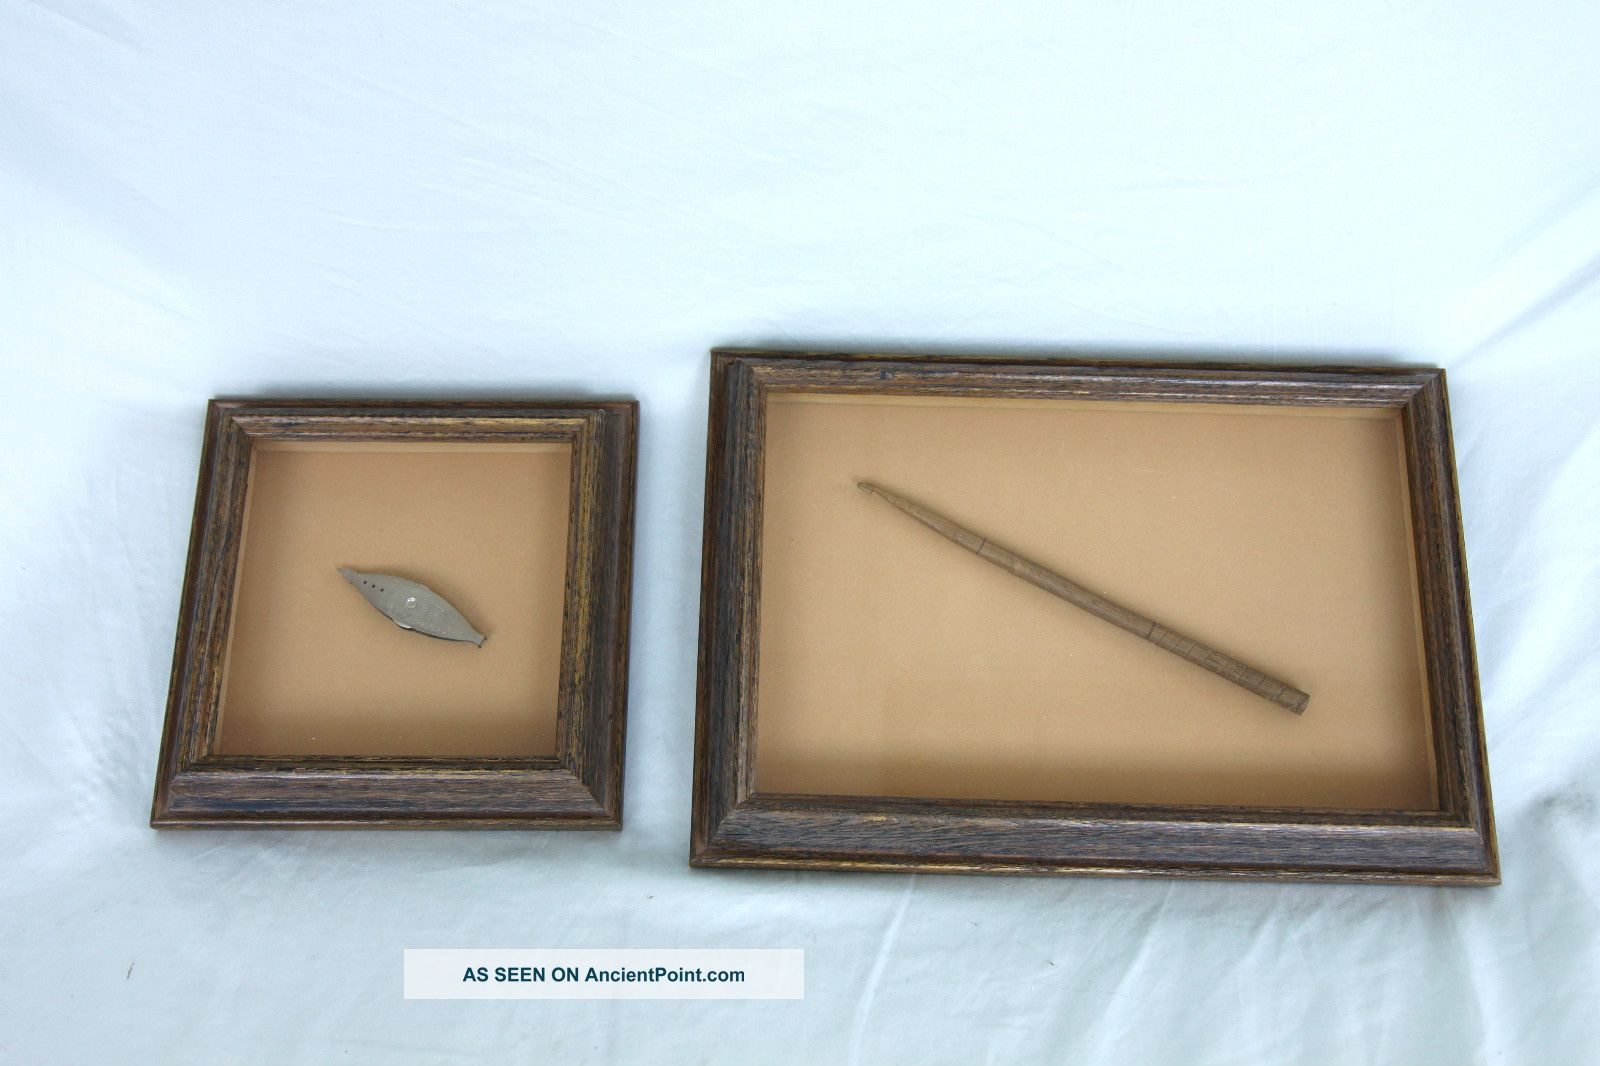 Antique Crochet Hook And Tatting Shuttle Displayed In Glass Shadow Frames Tools, Scissors & Measures photo